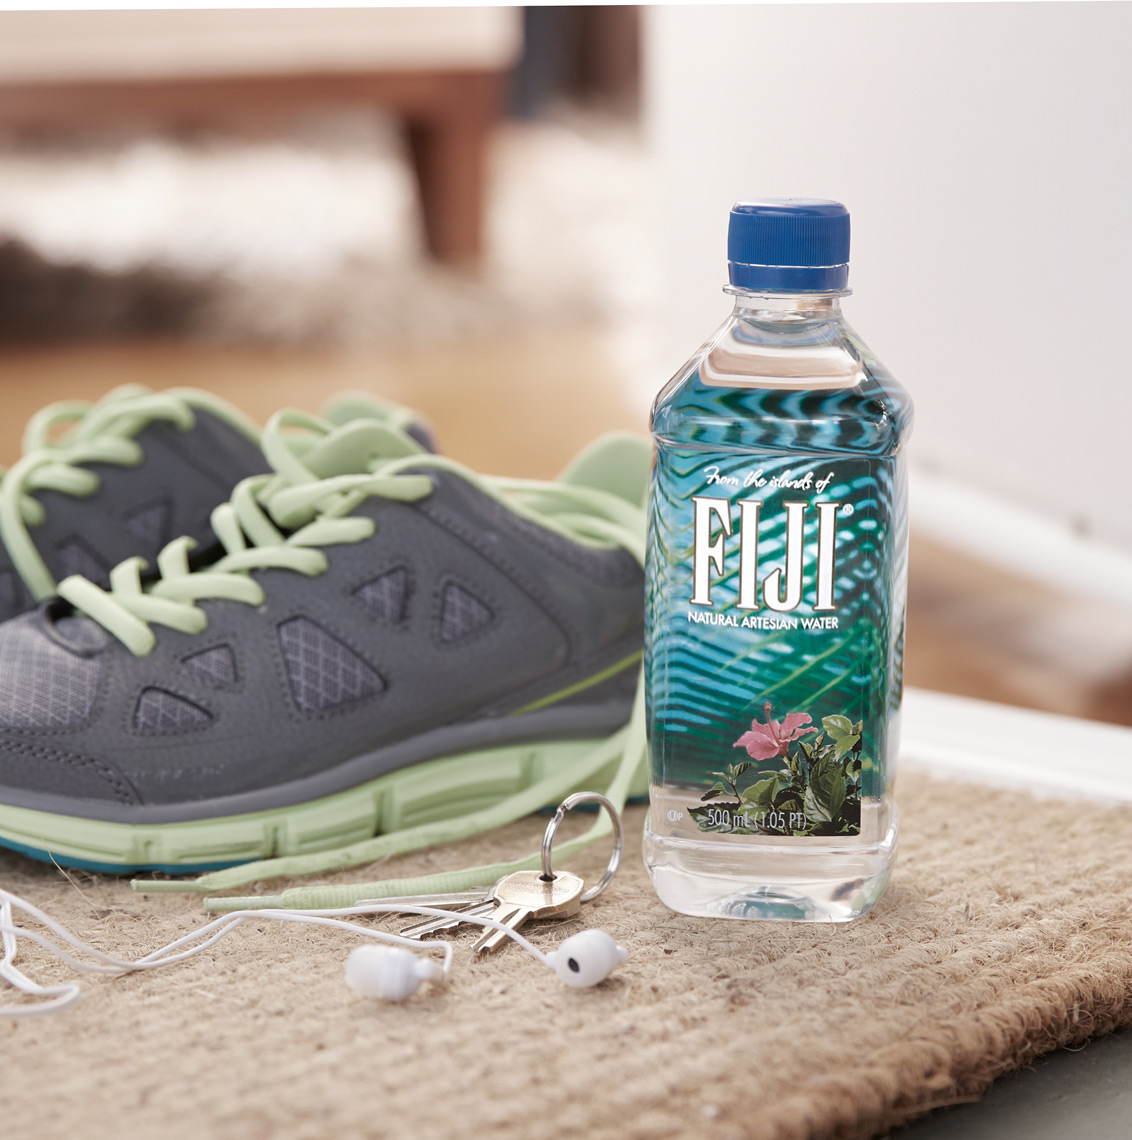 Fiji bottled water next to running shoes and earbuds